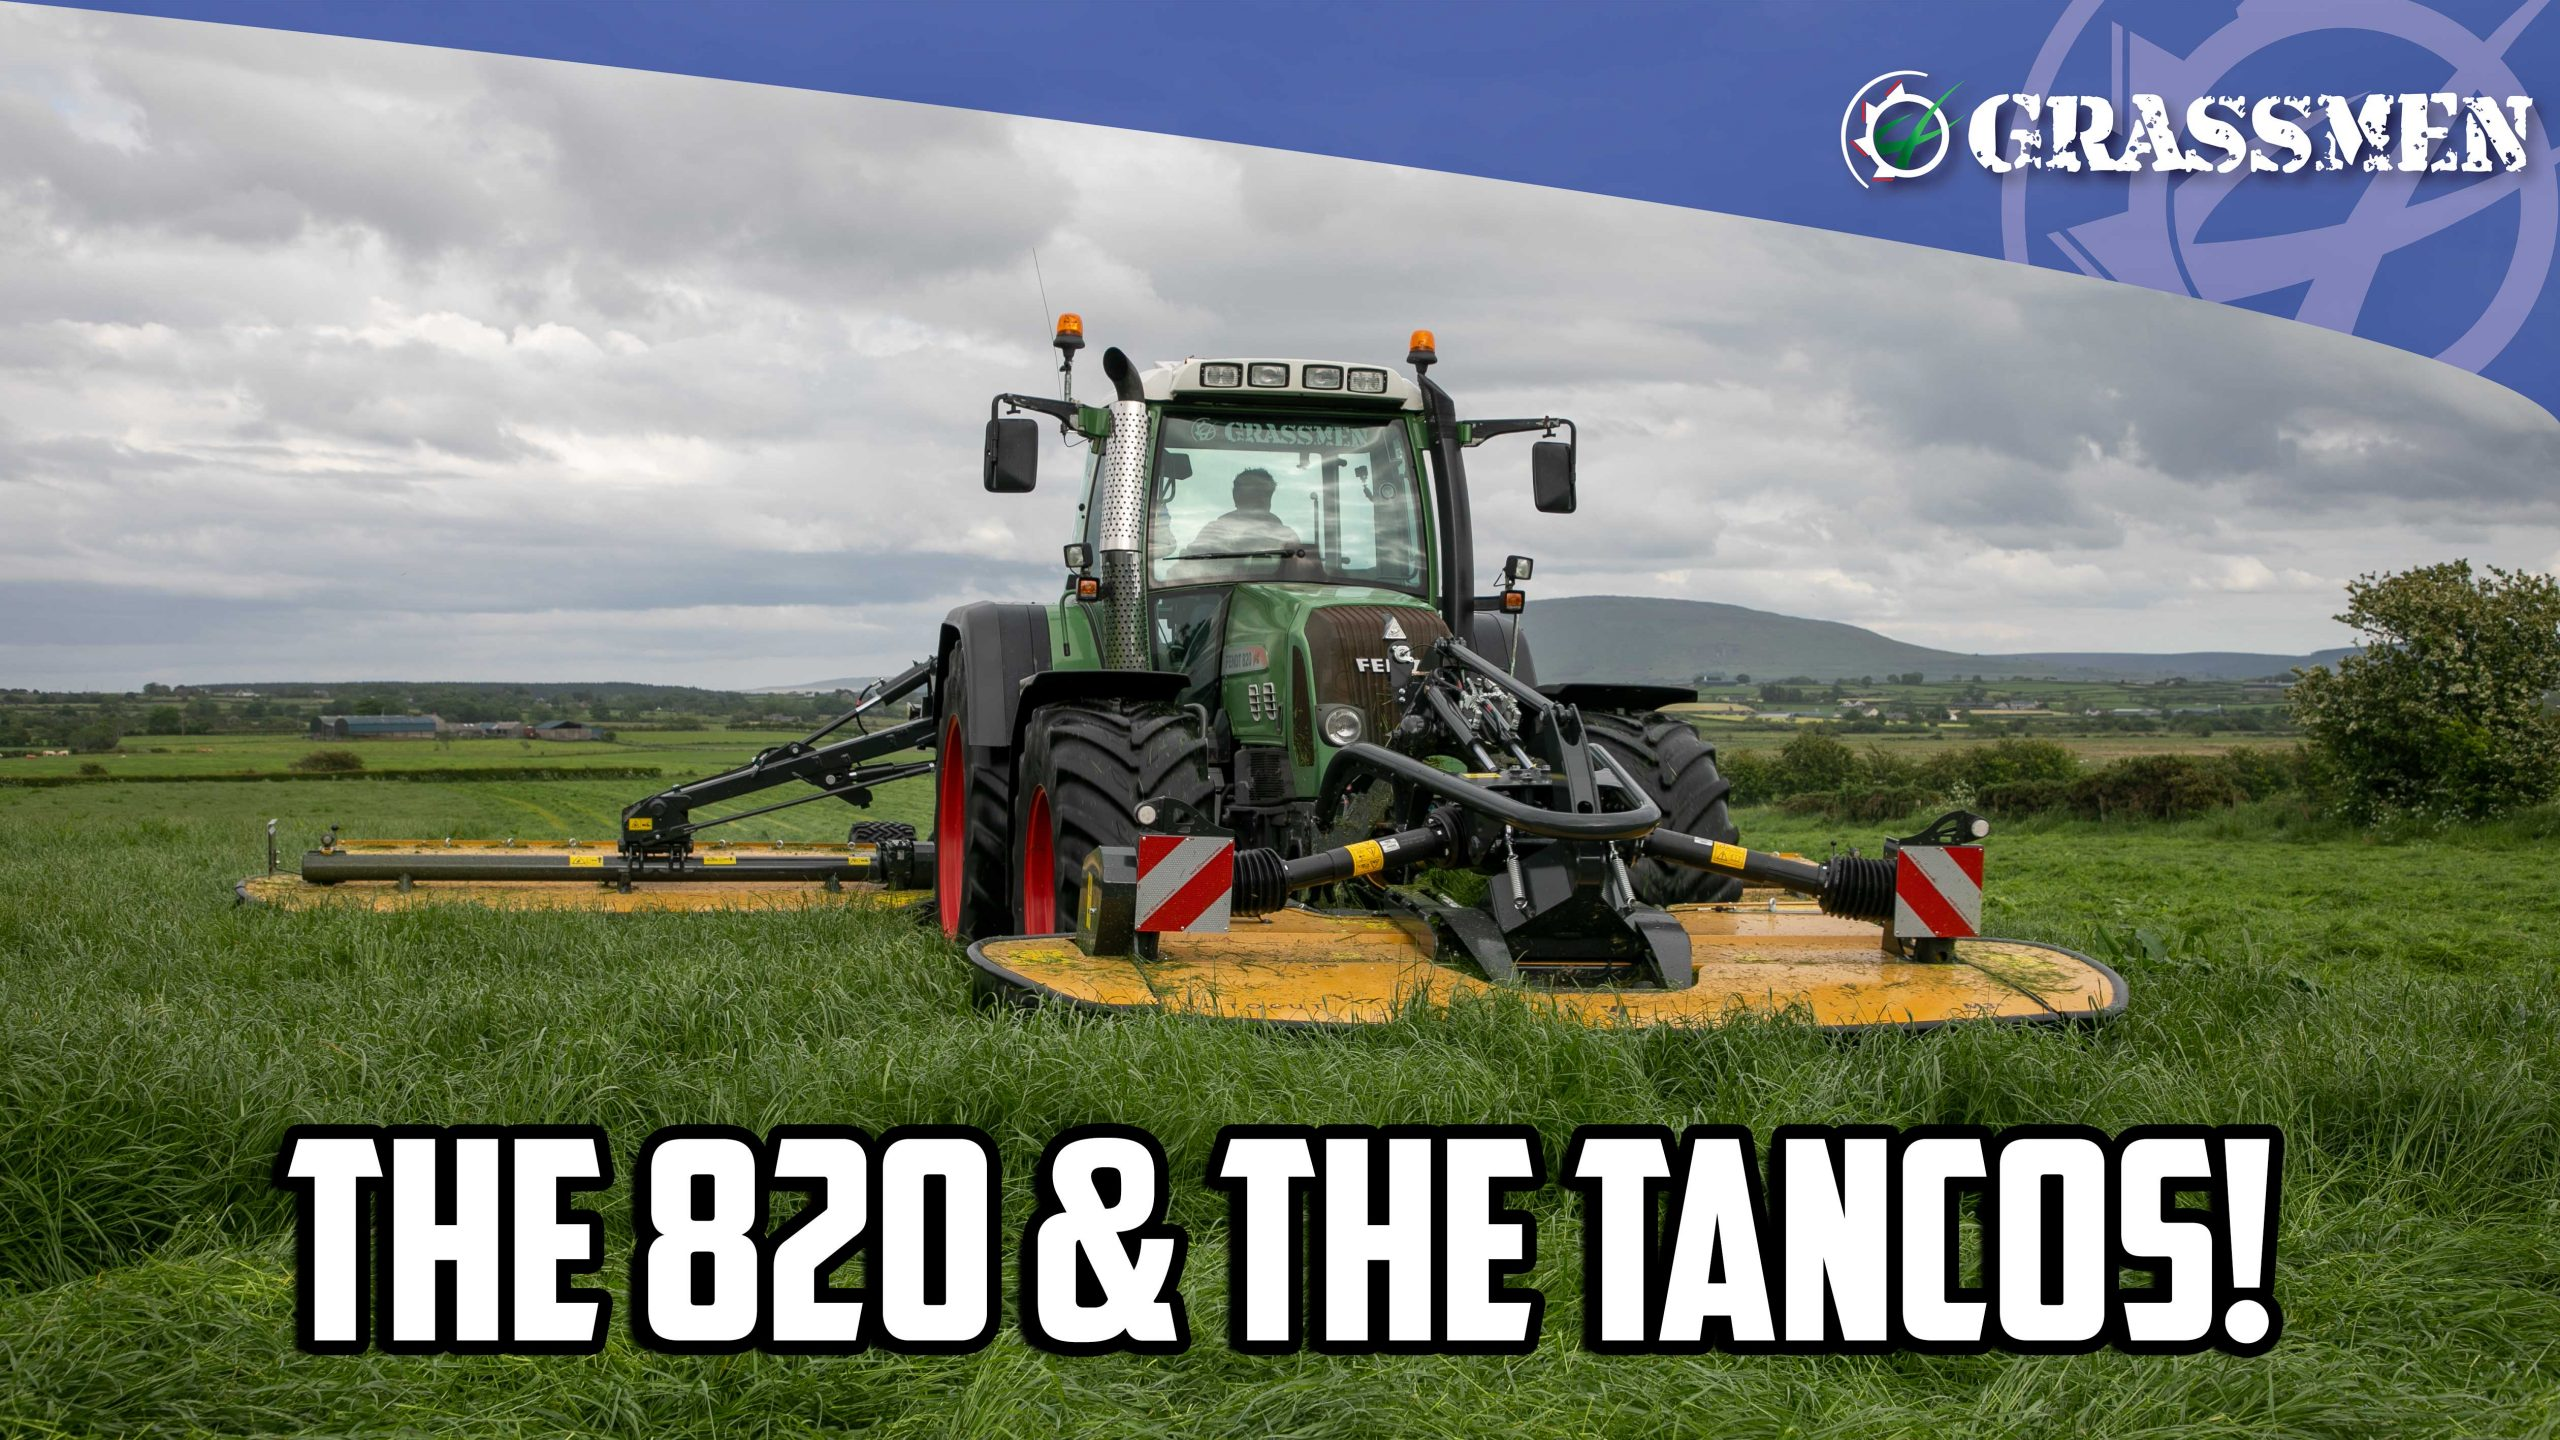 The 820 has a go on the Tancos!